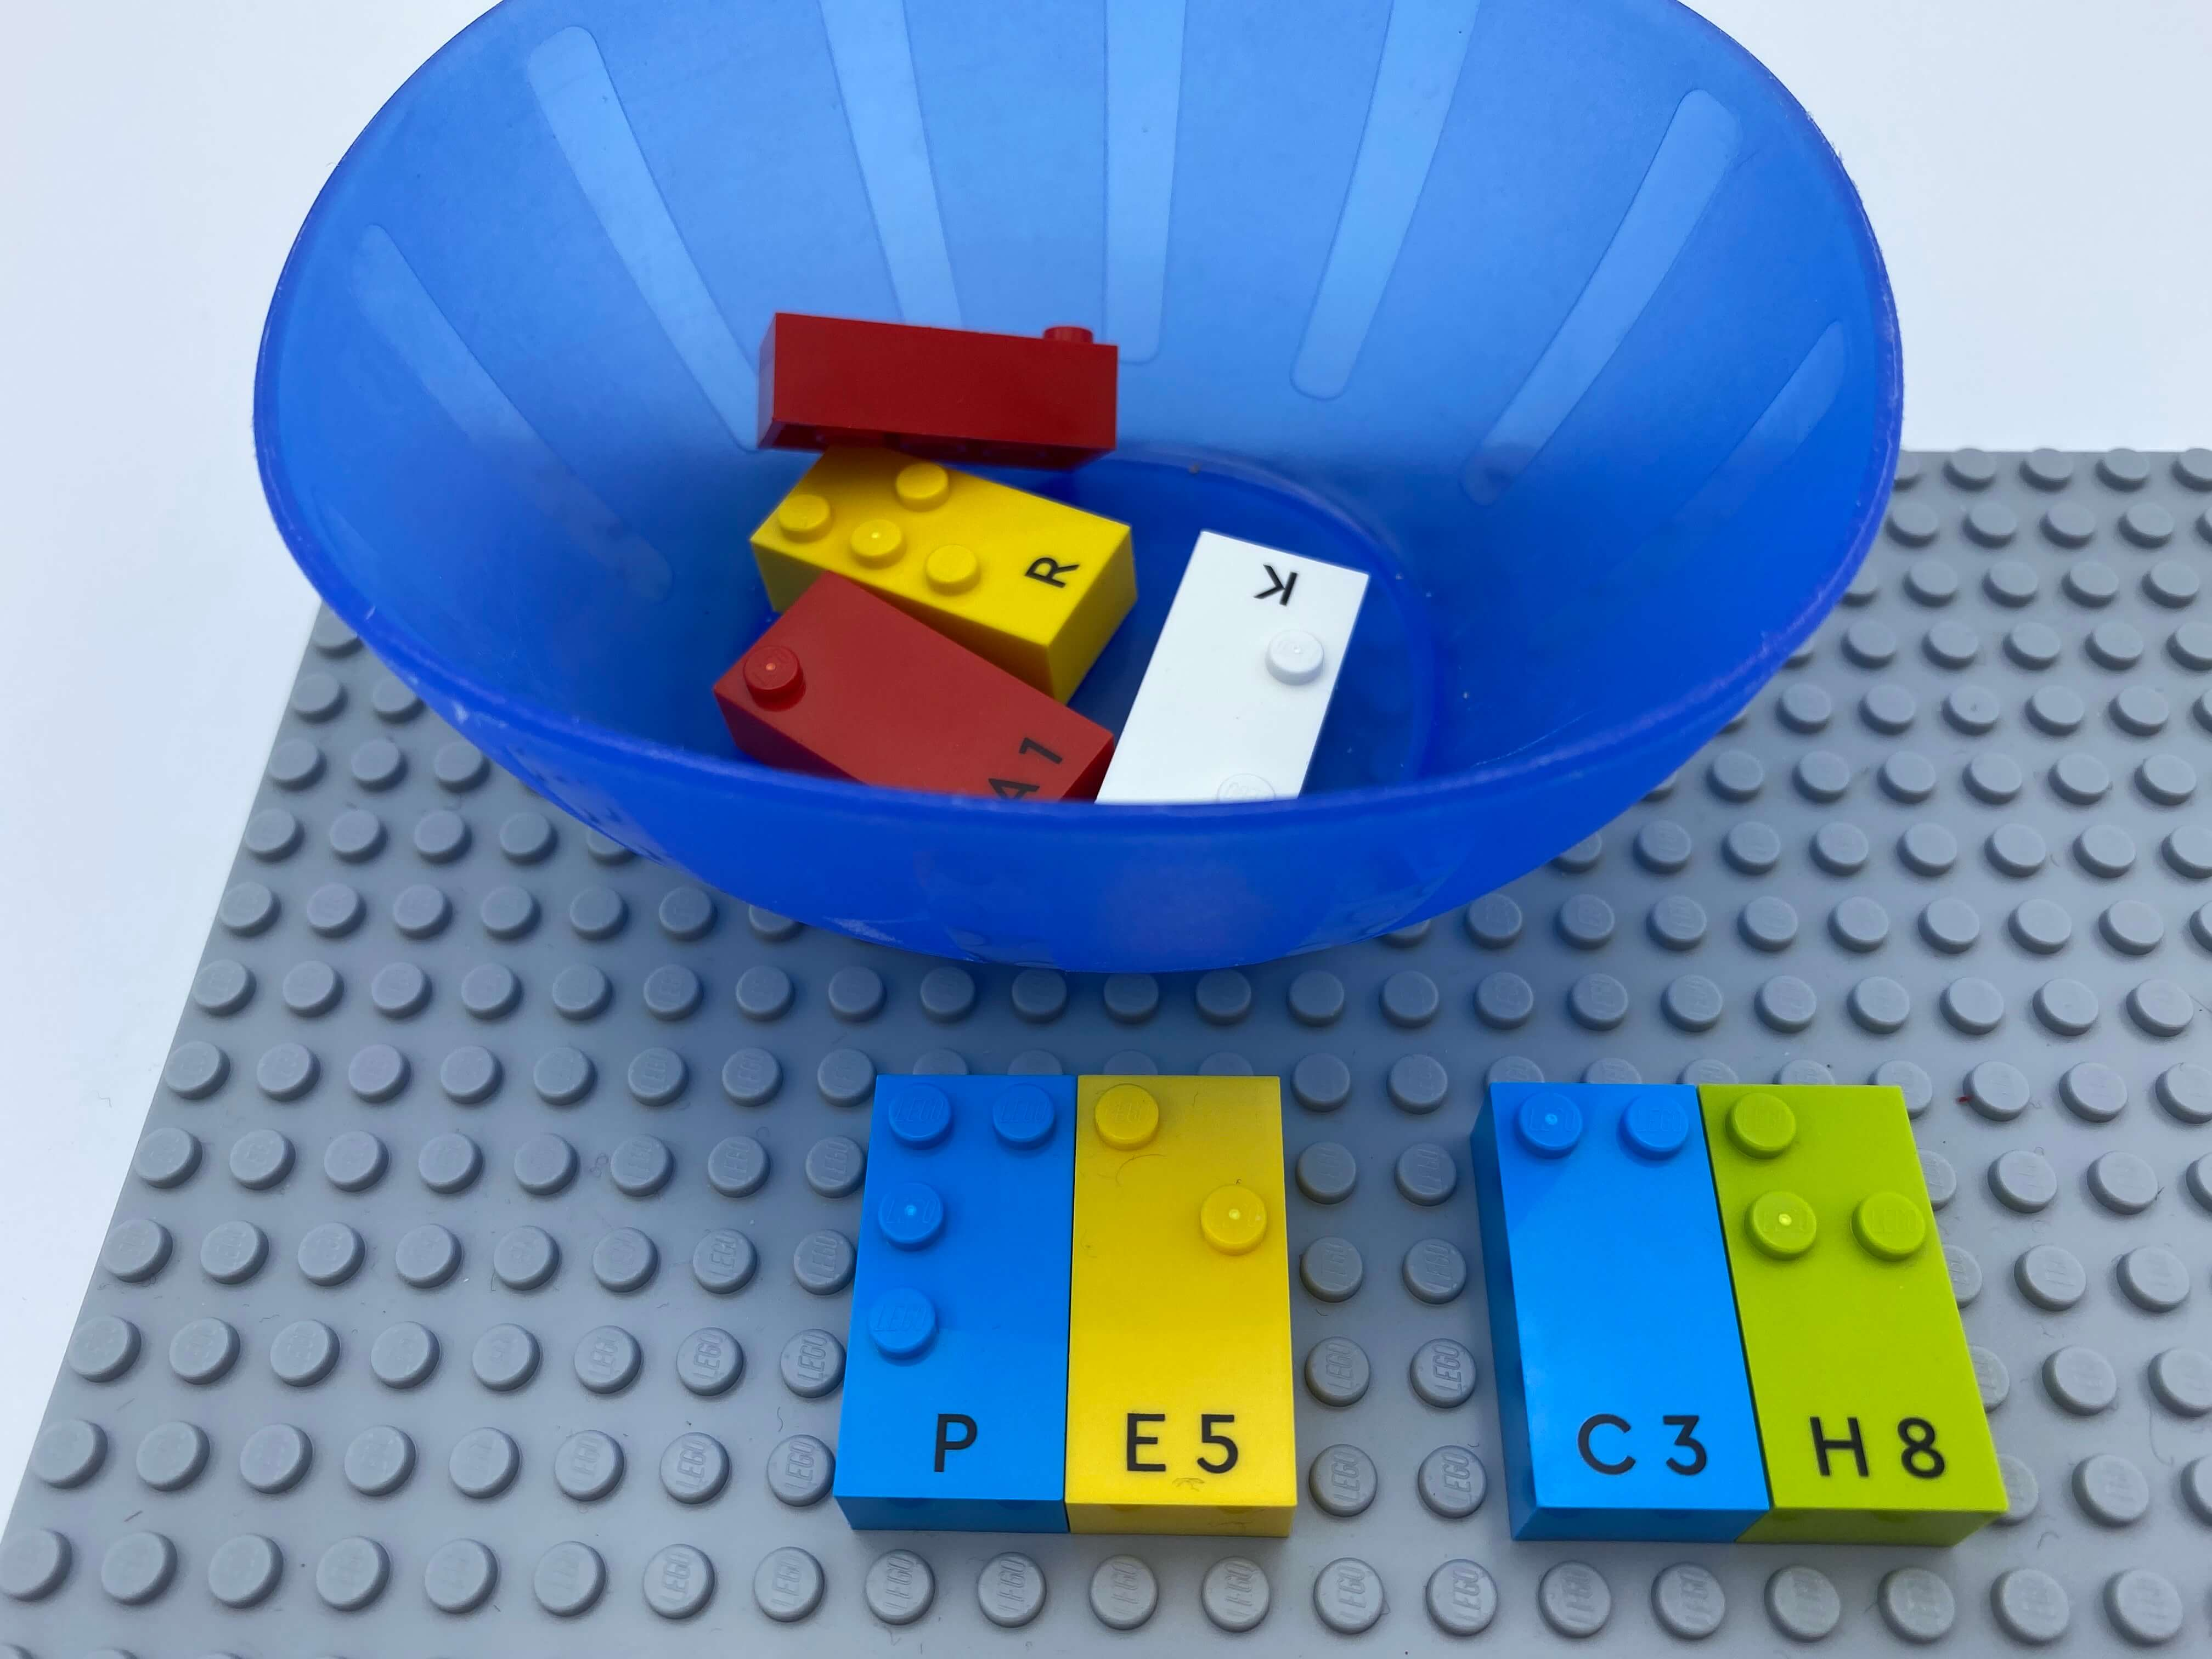 2 pairs of letter bricks (p, e and c, h) aligned on the base plate, a bowl with bricks.